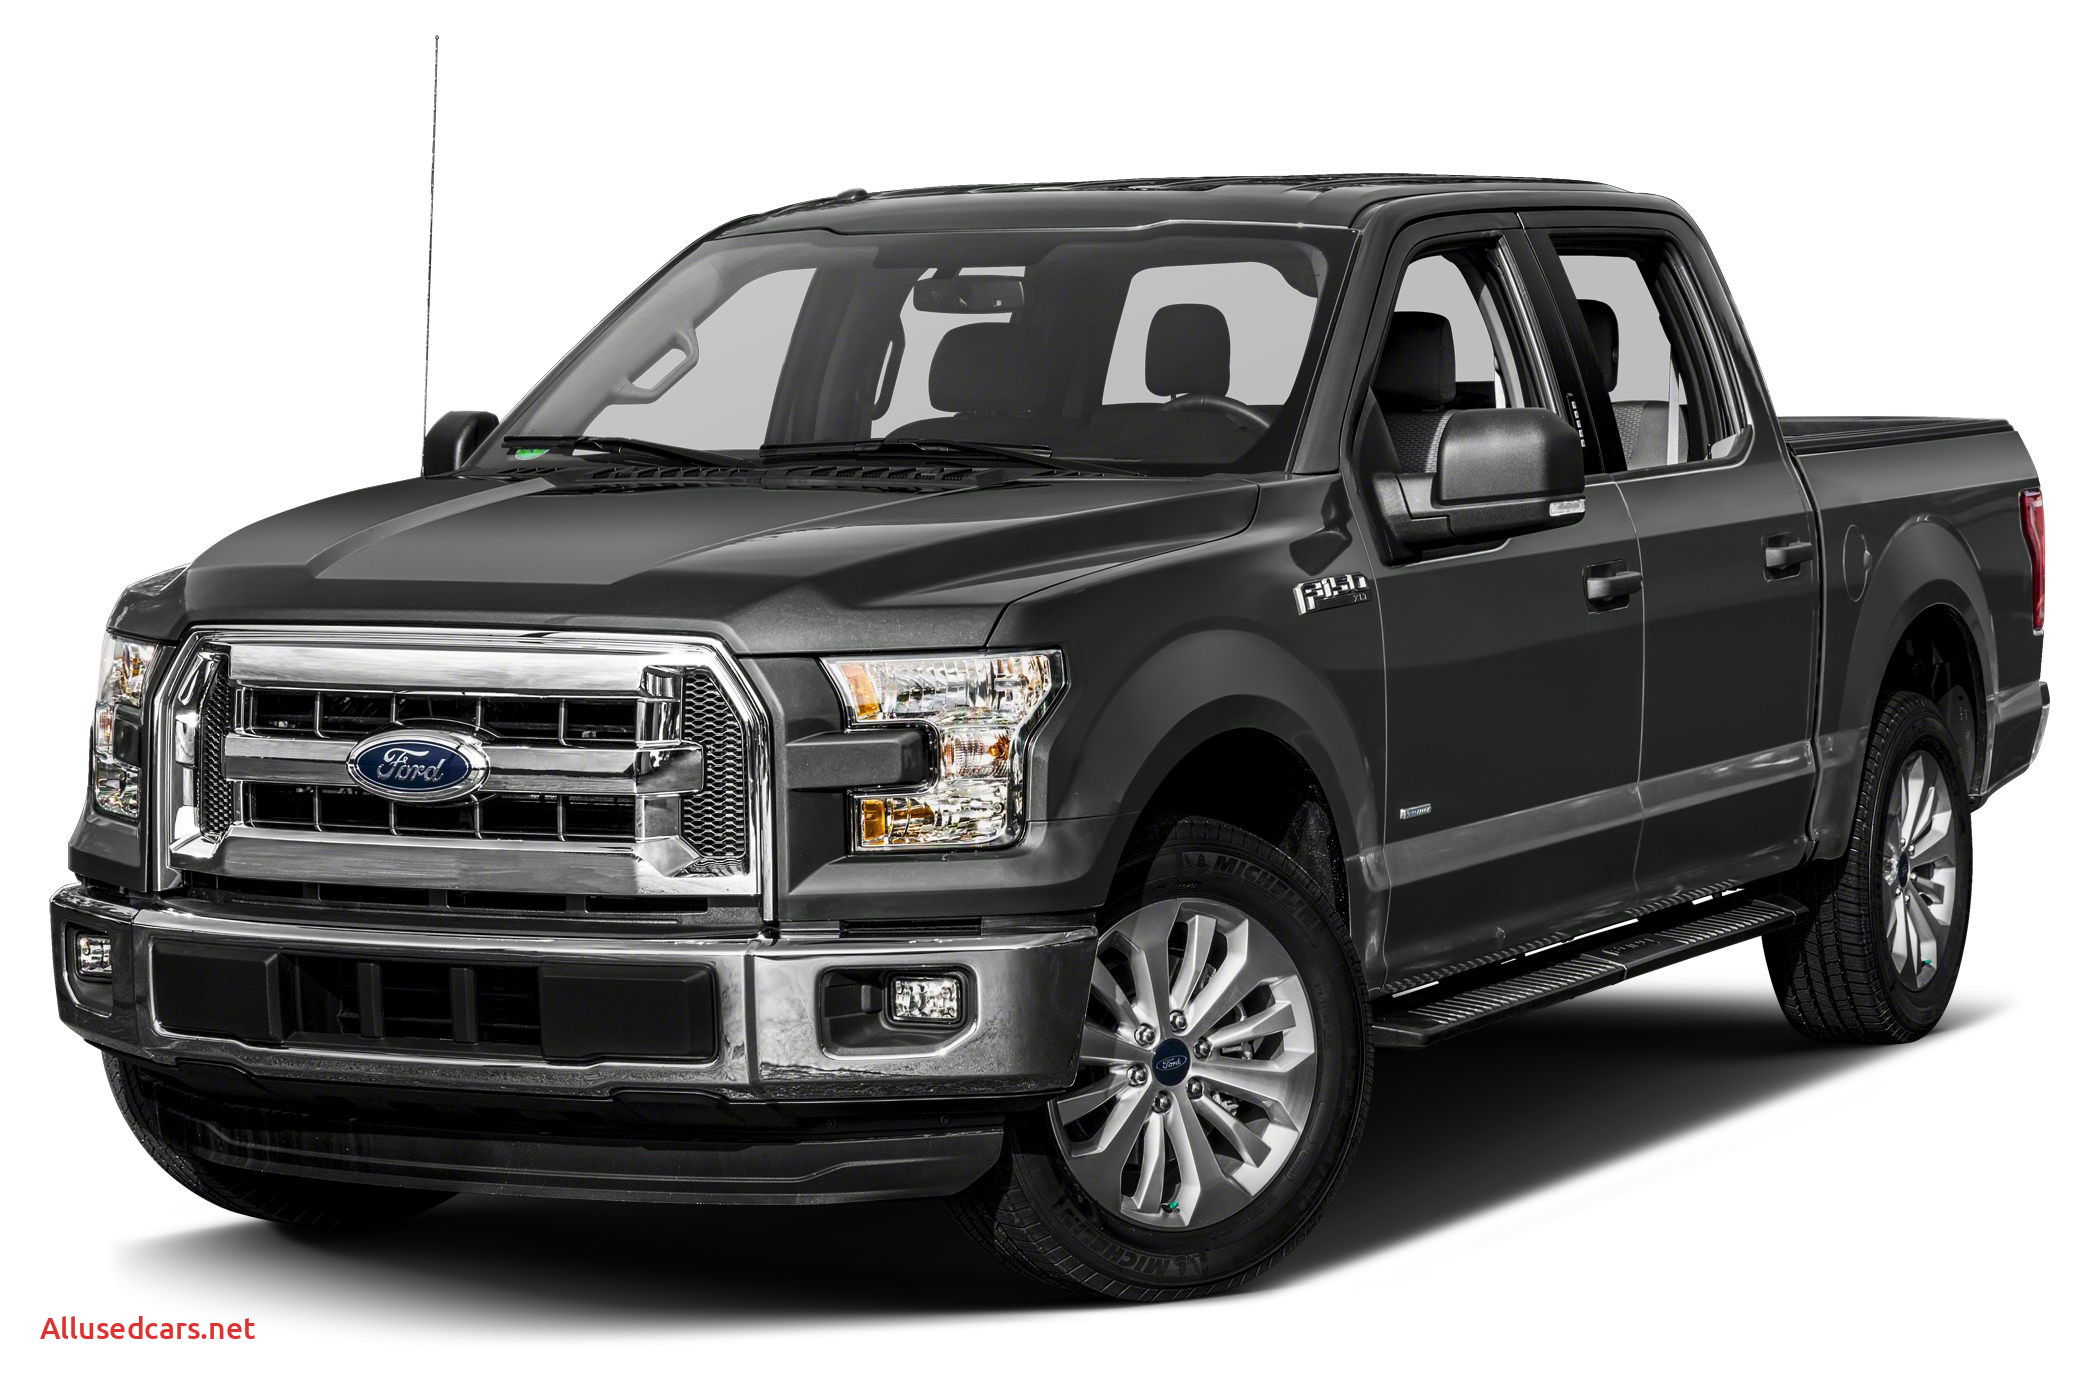 Elegant 2016 ford F-150 Super Cab